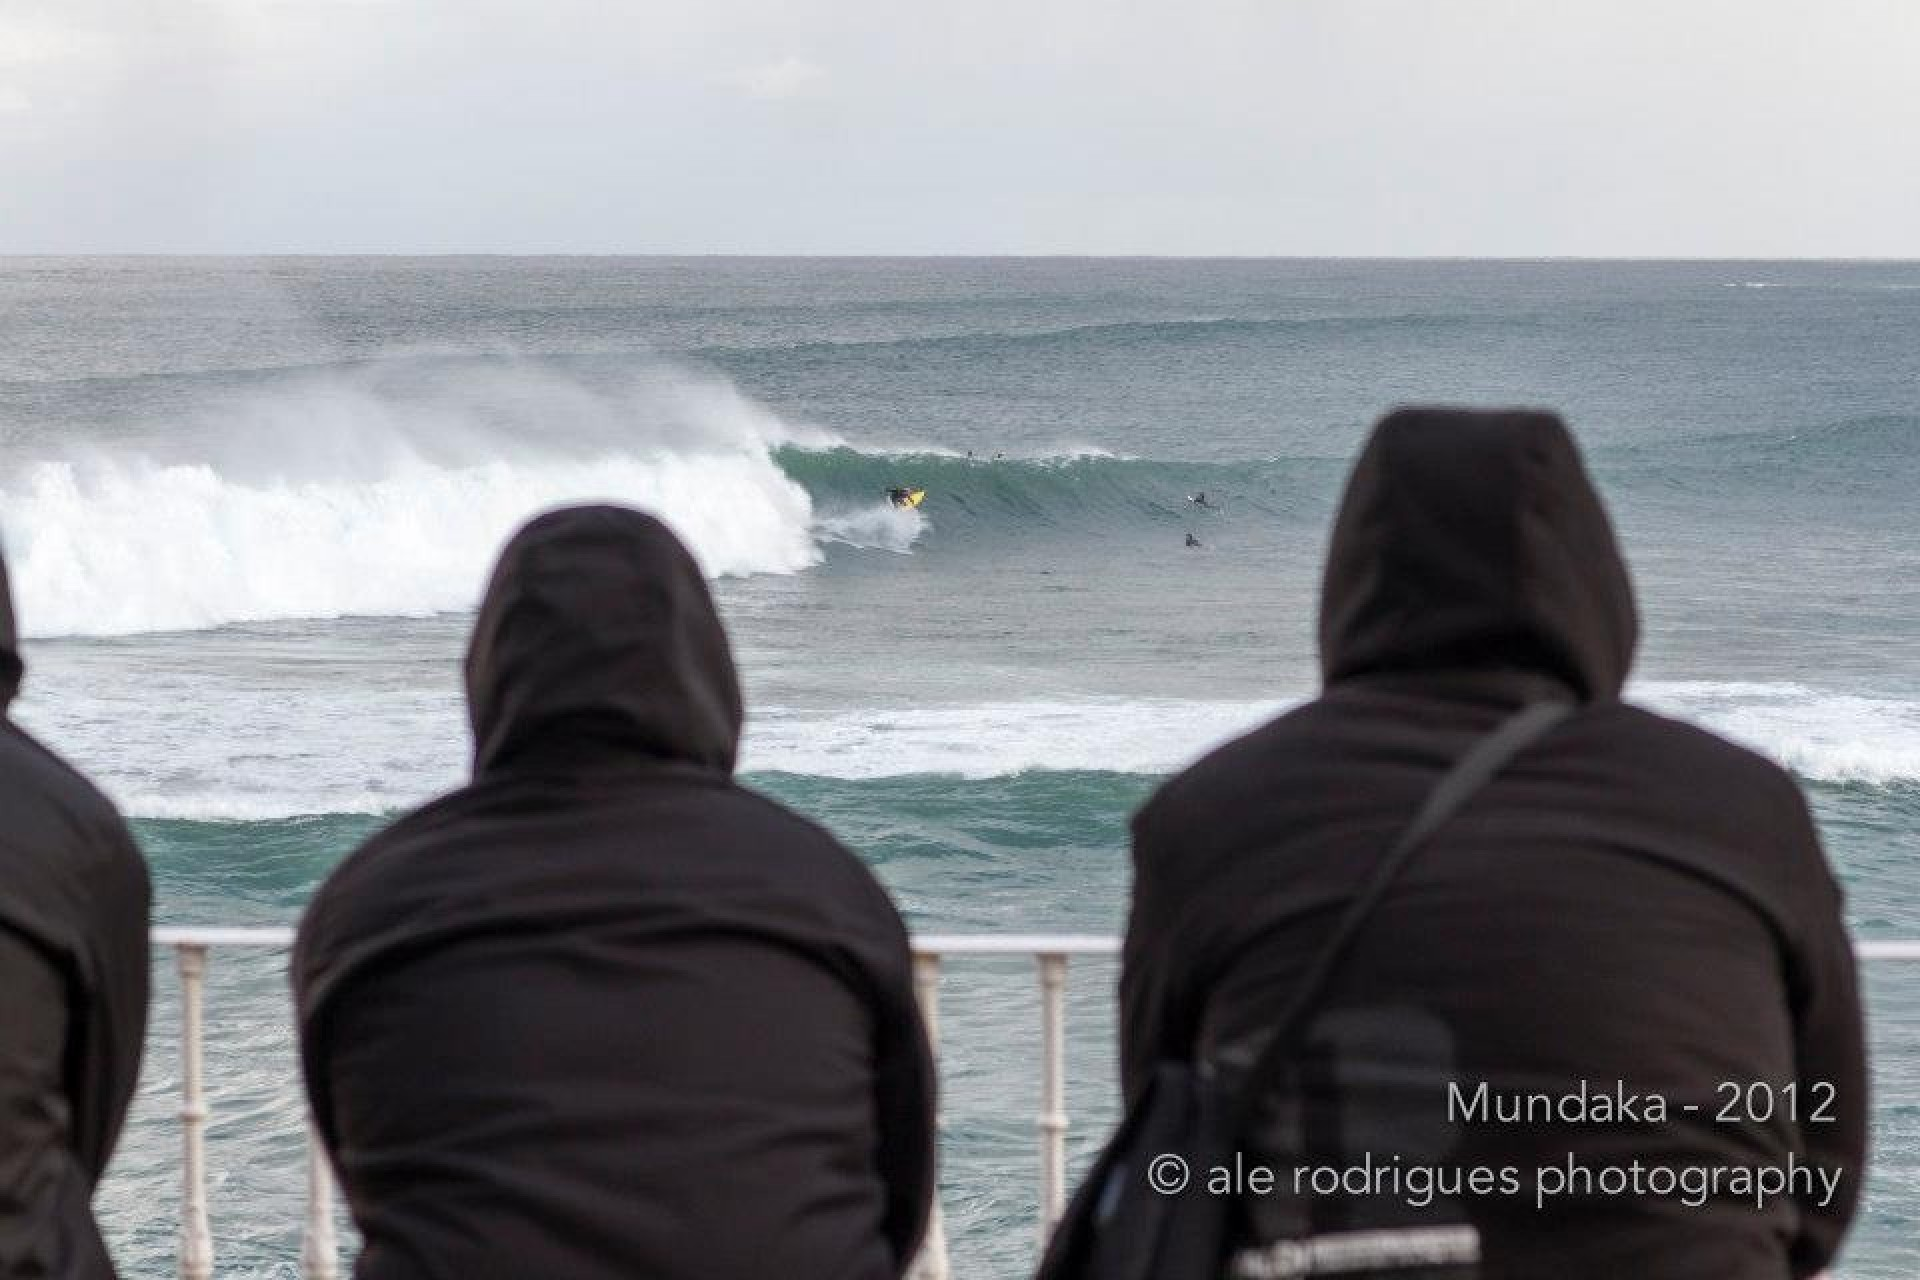 Ale Rodrigues Photography's photo of Mundaka